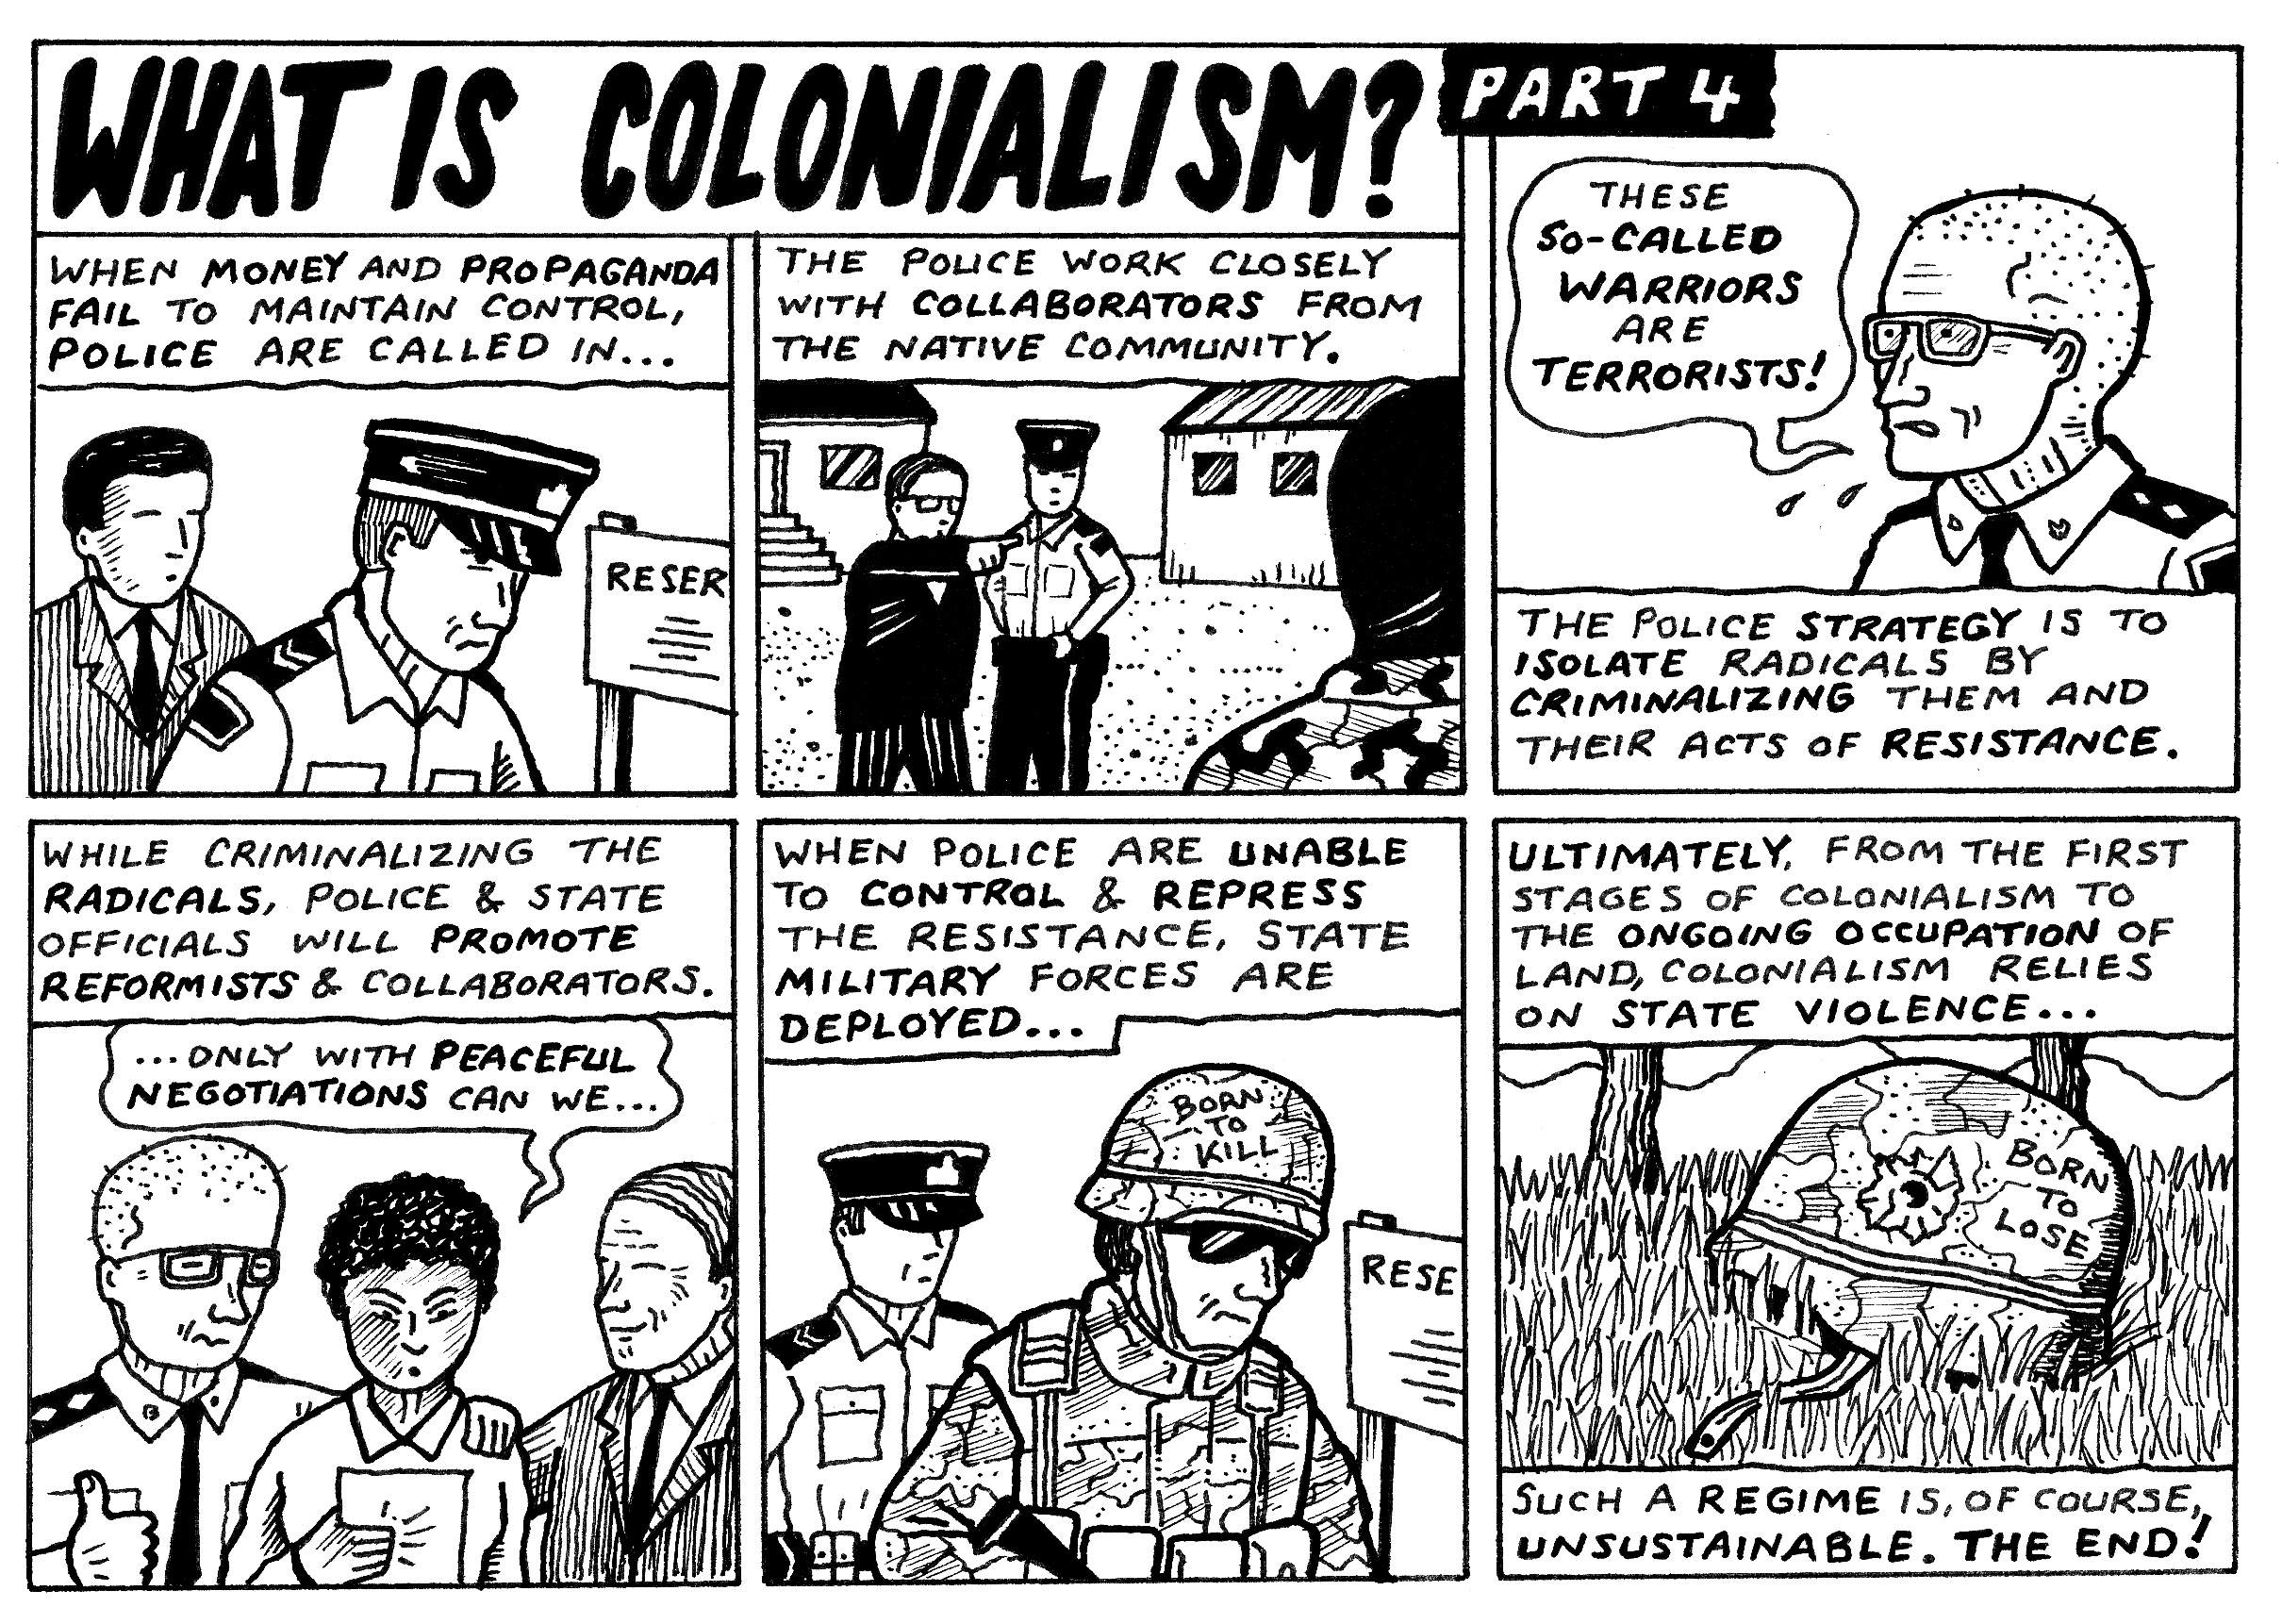 Imperialism and colonization